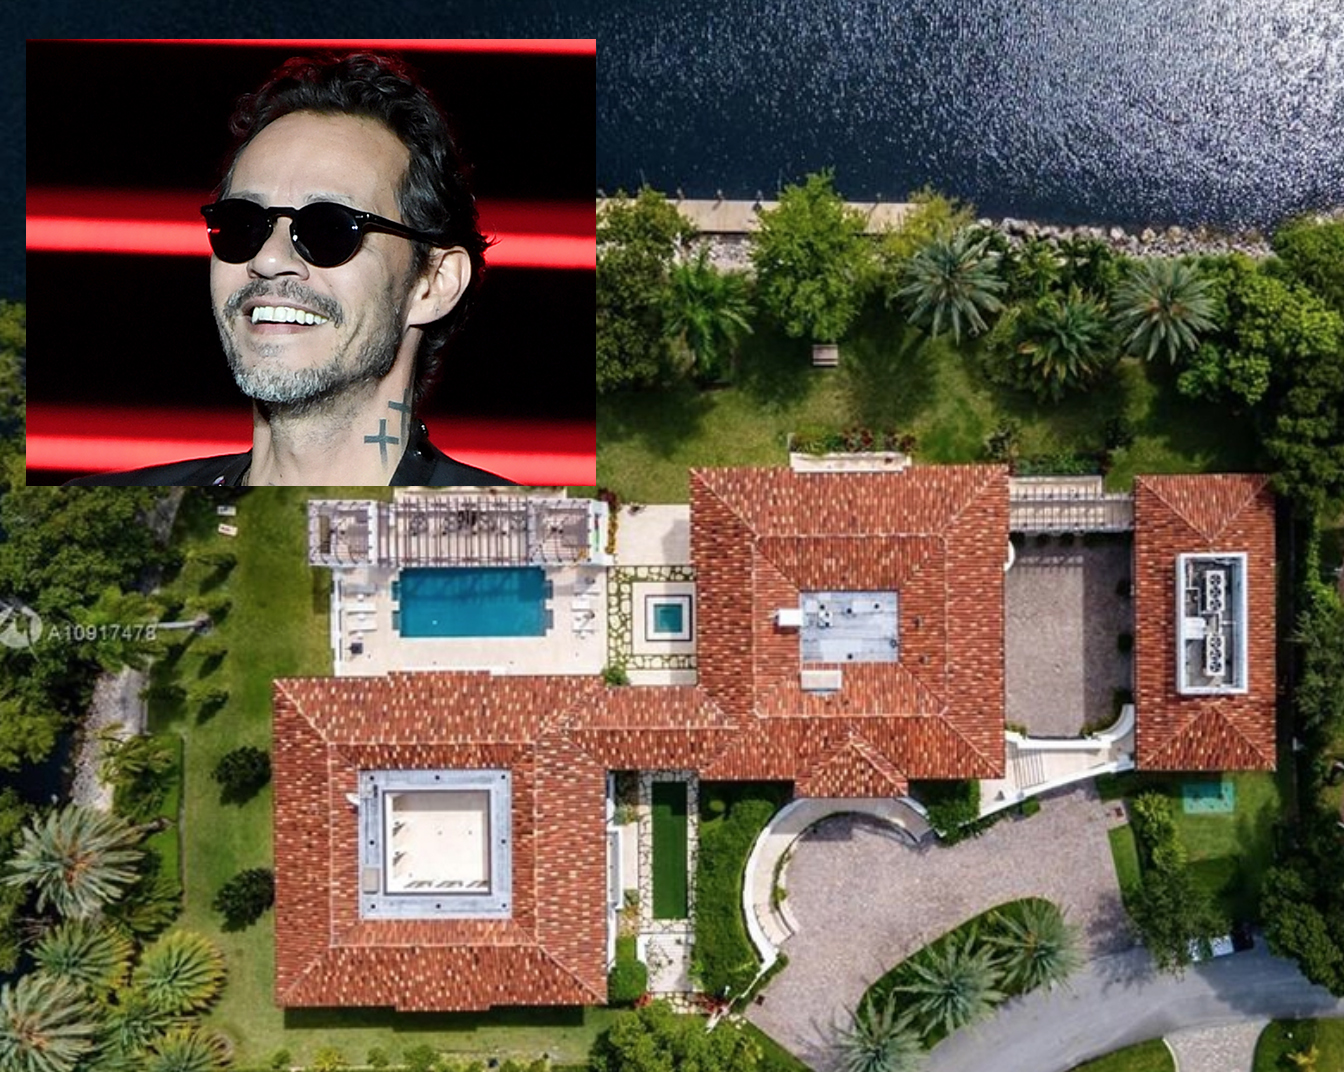 Casa de Marc Anthony